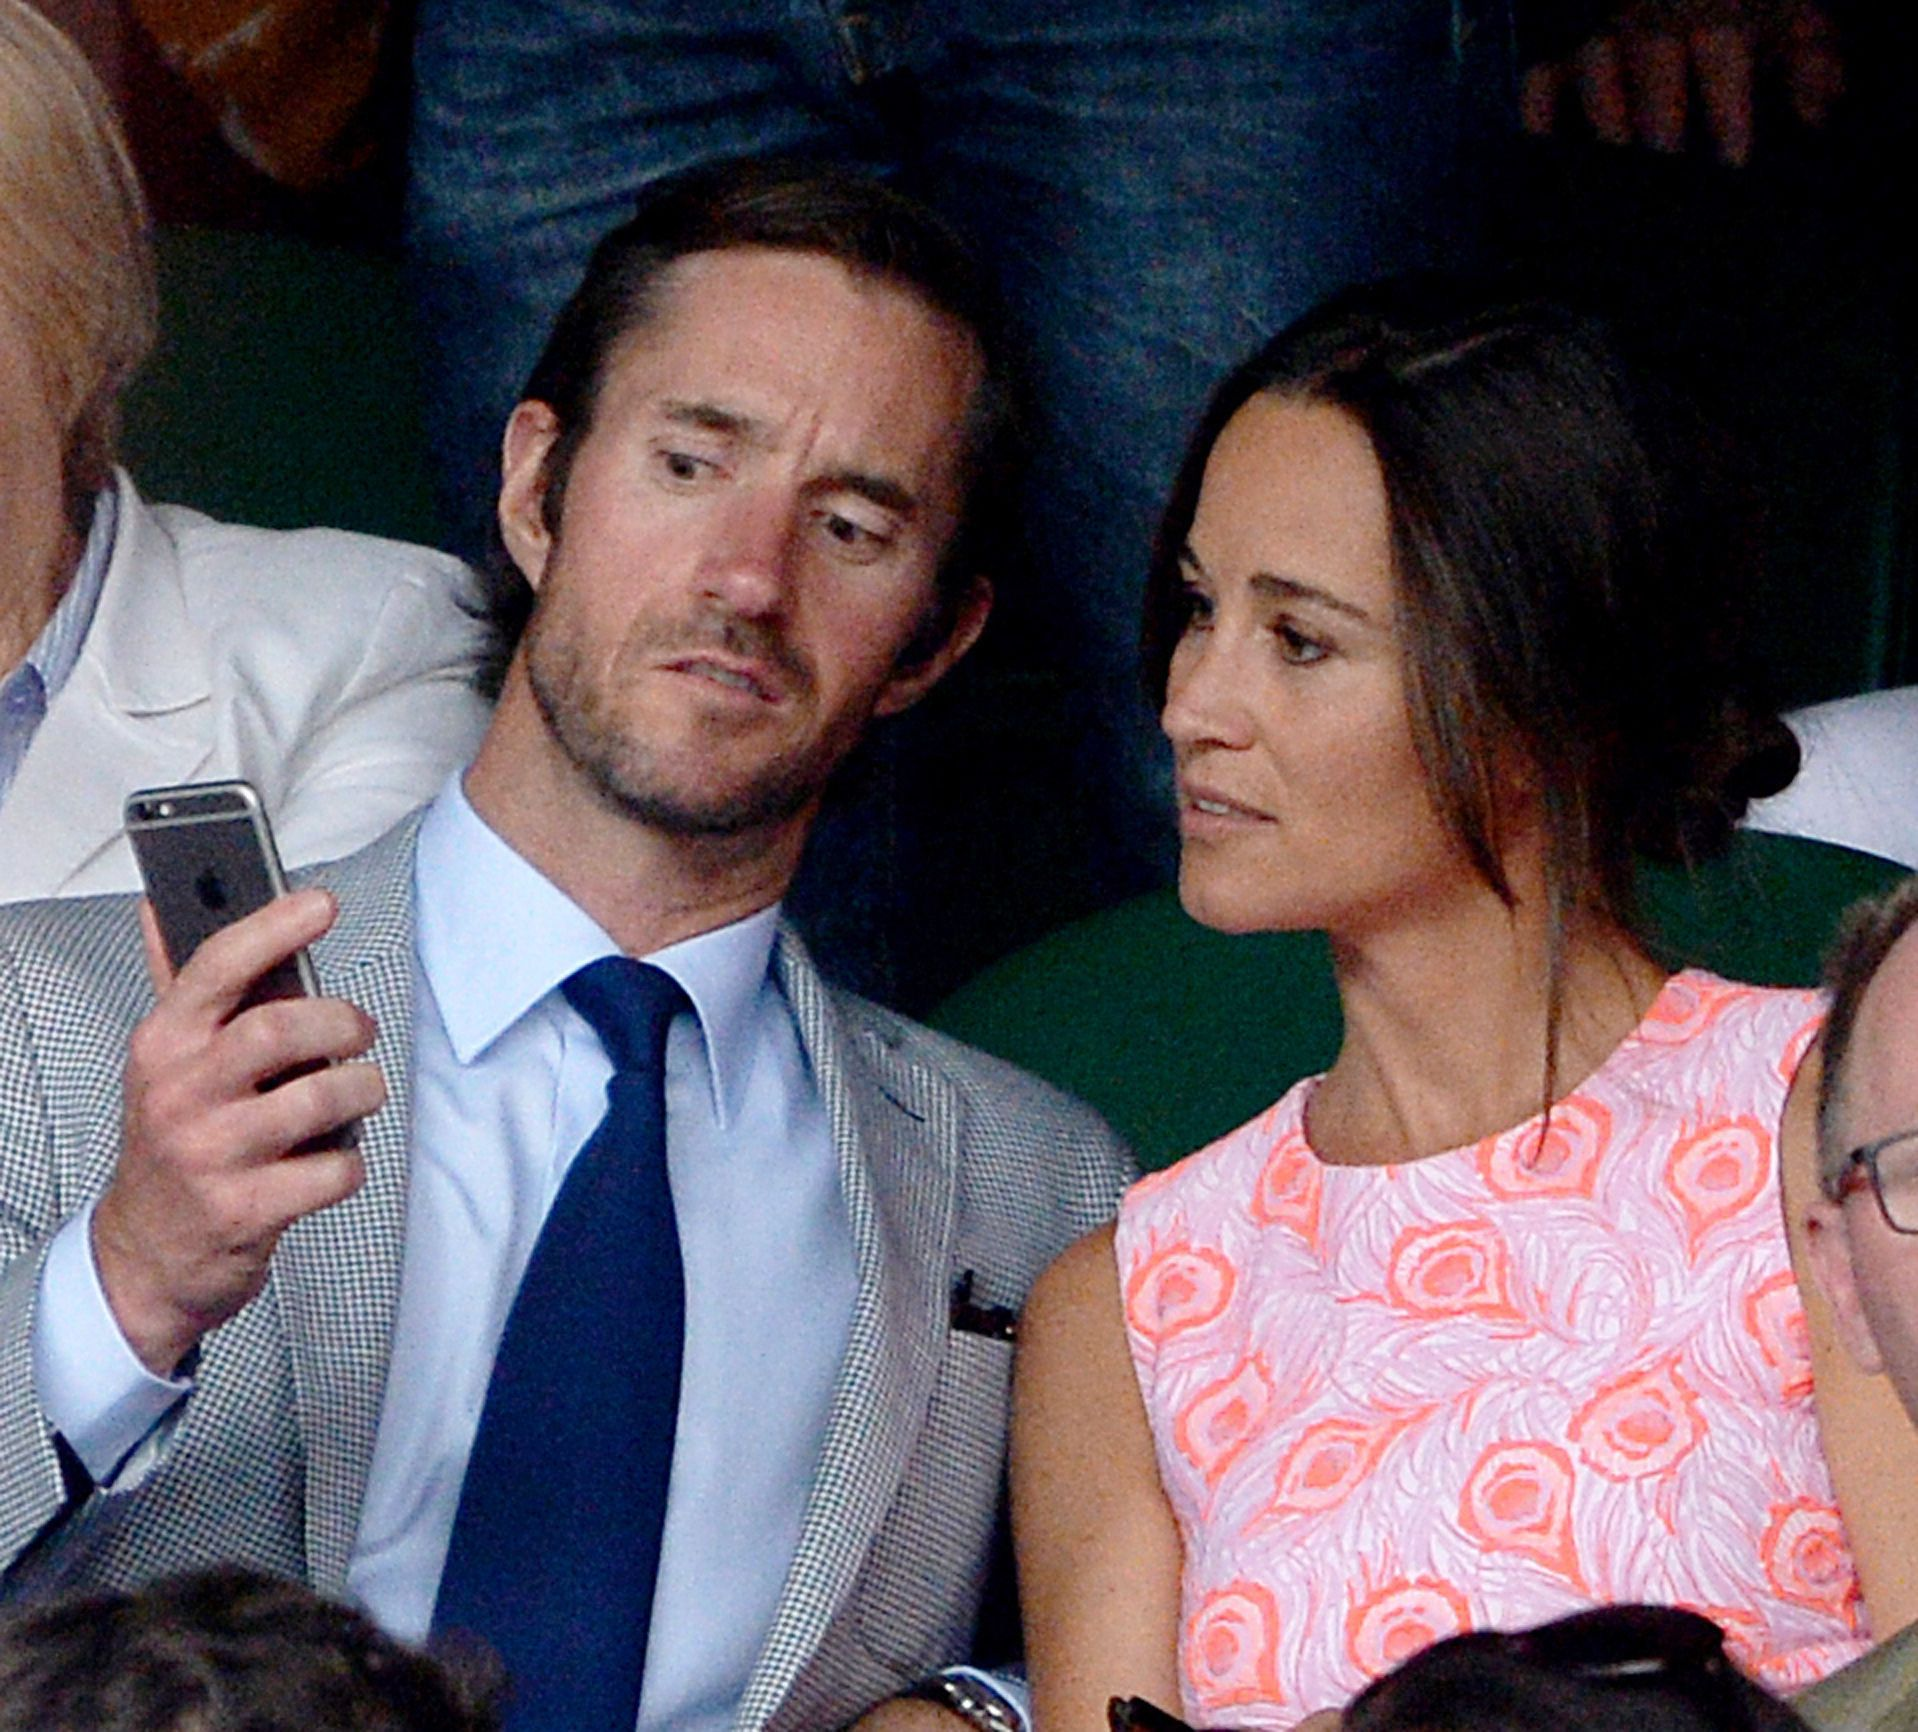 Crowds Gather Ahead Of Pippa Middleton's Wedding